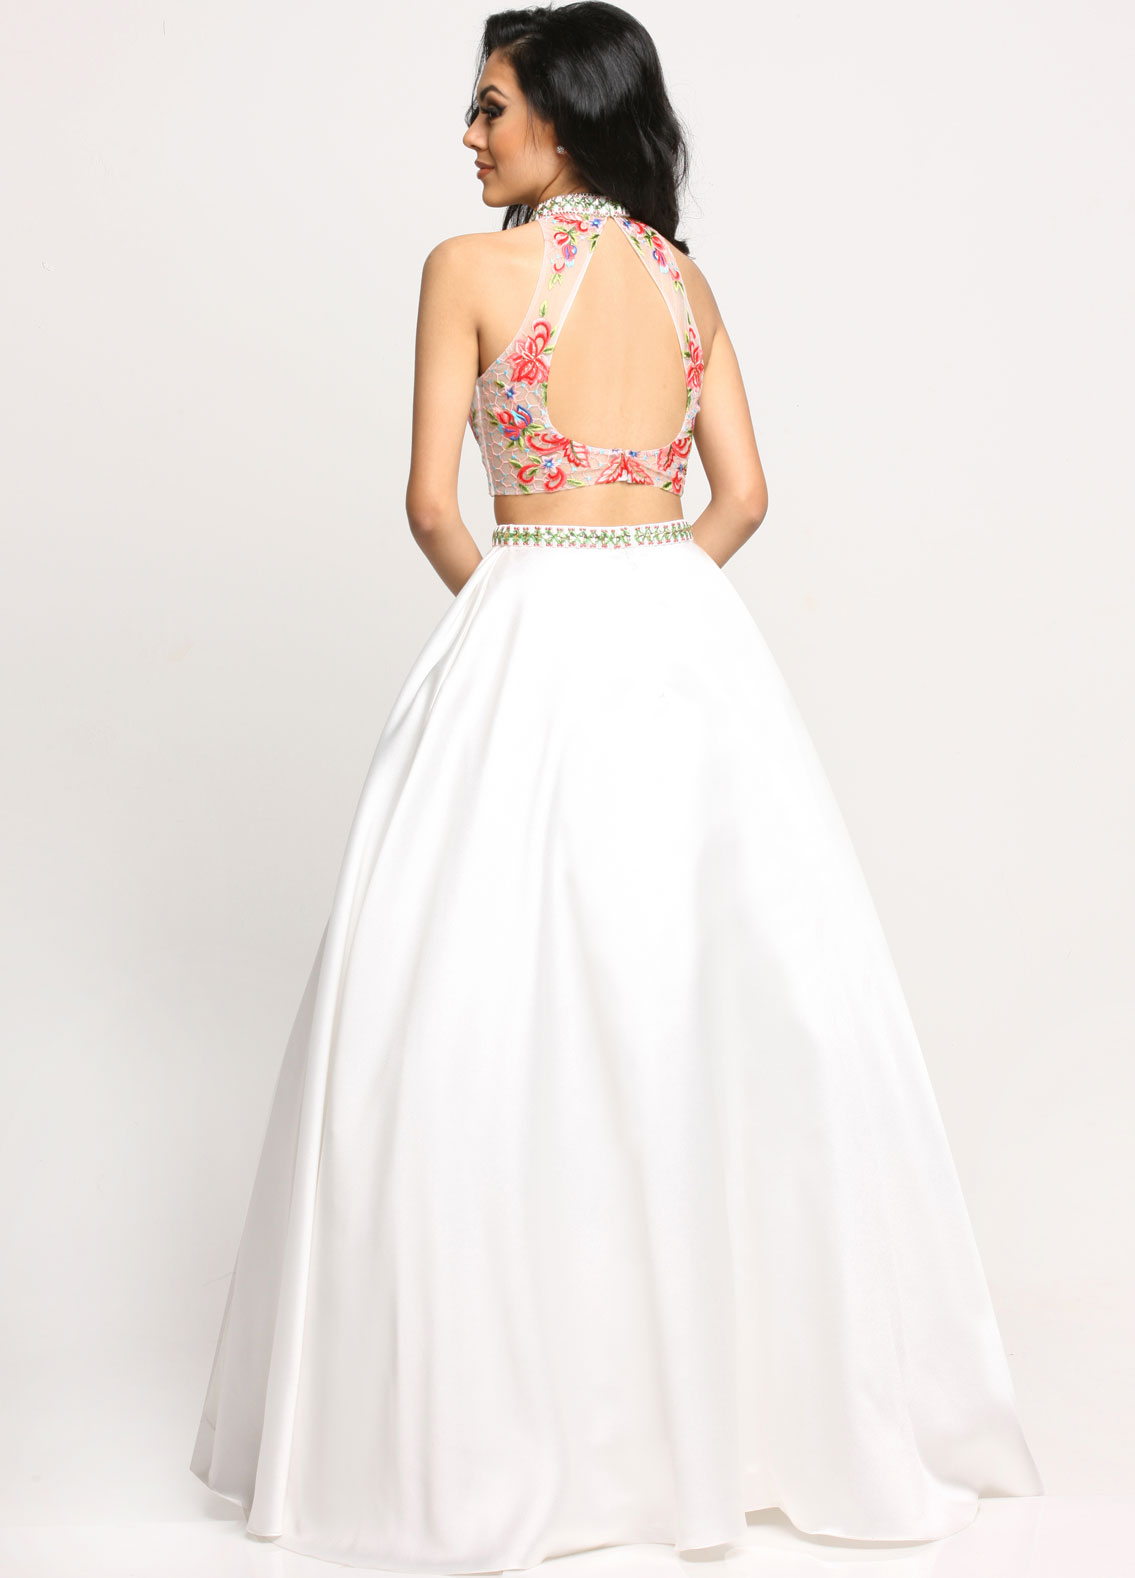 Image showing back view of style #71629